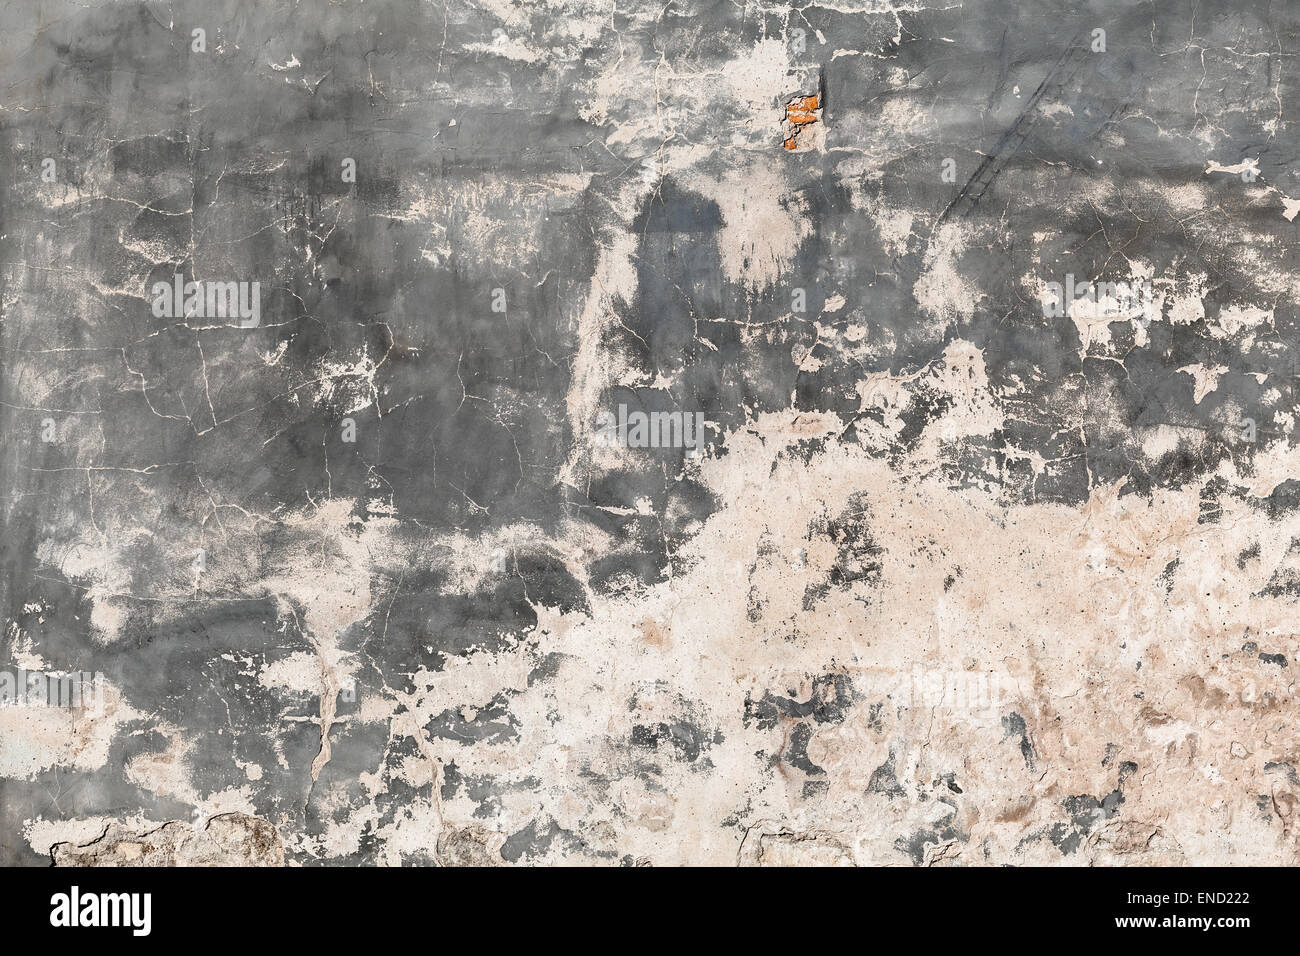 Shabby Chic Wand nostalgic grey wall in a shabby chic style stock photo: 82036250 - alamy